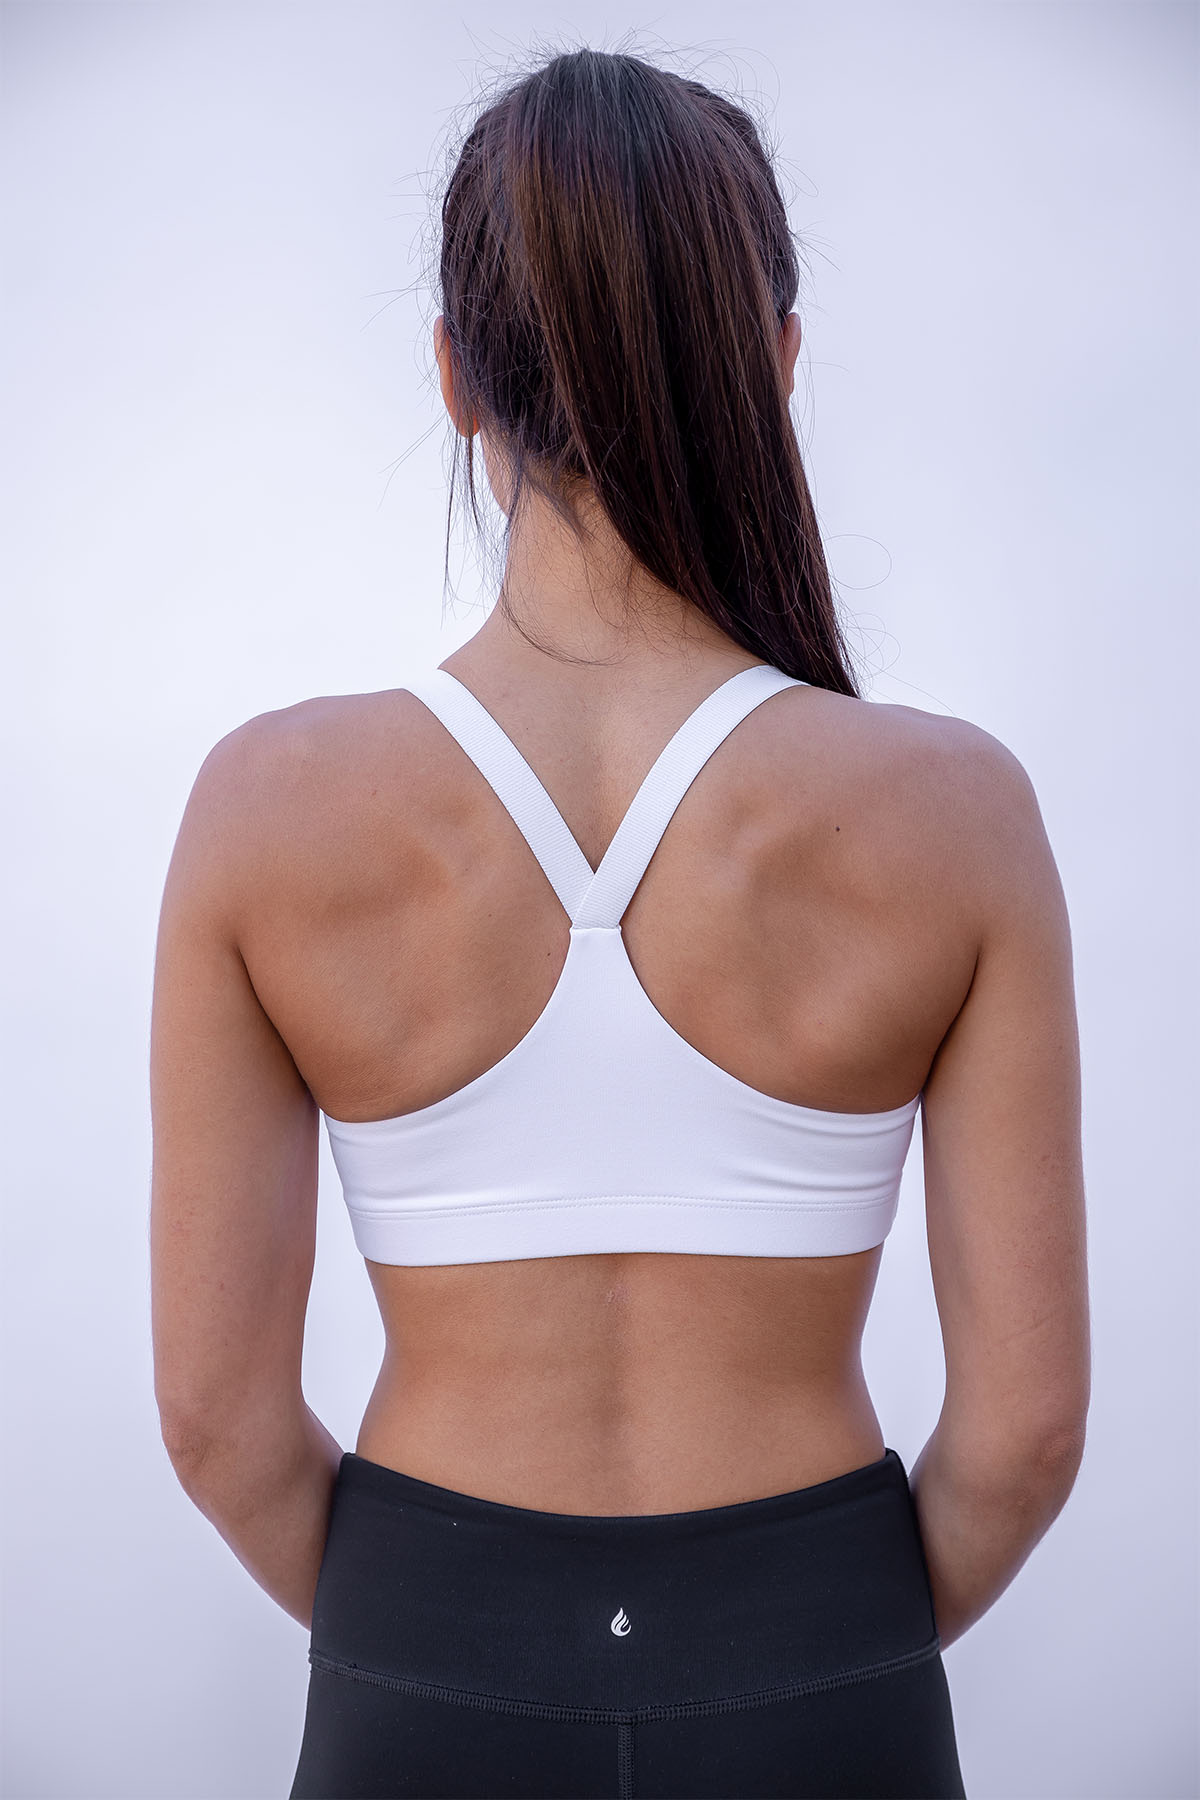 55a0129786a MAKE IT A HABIT Valtellina V-Back Sports Bra – White – Certo Apparel ...